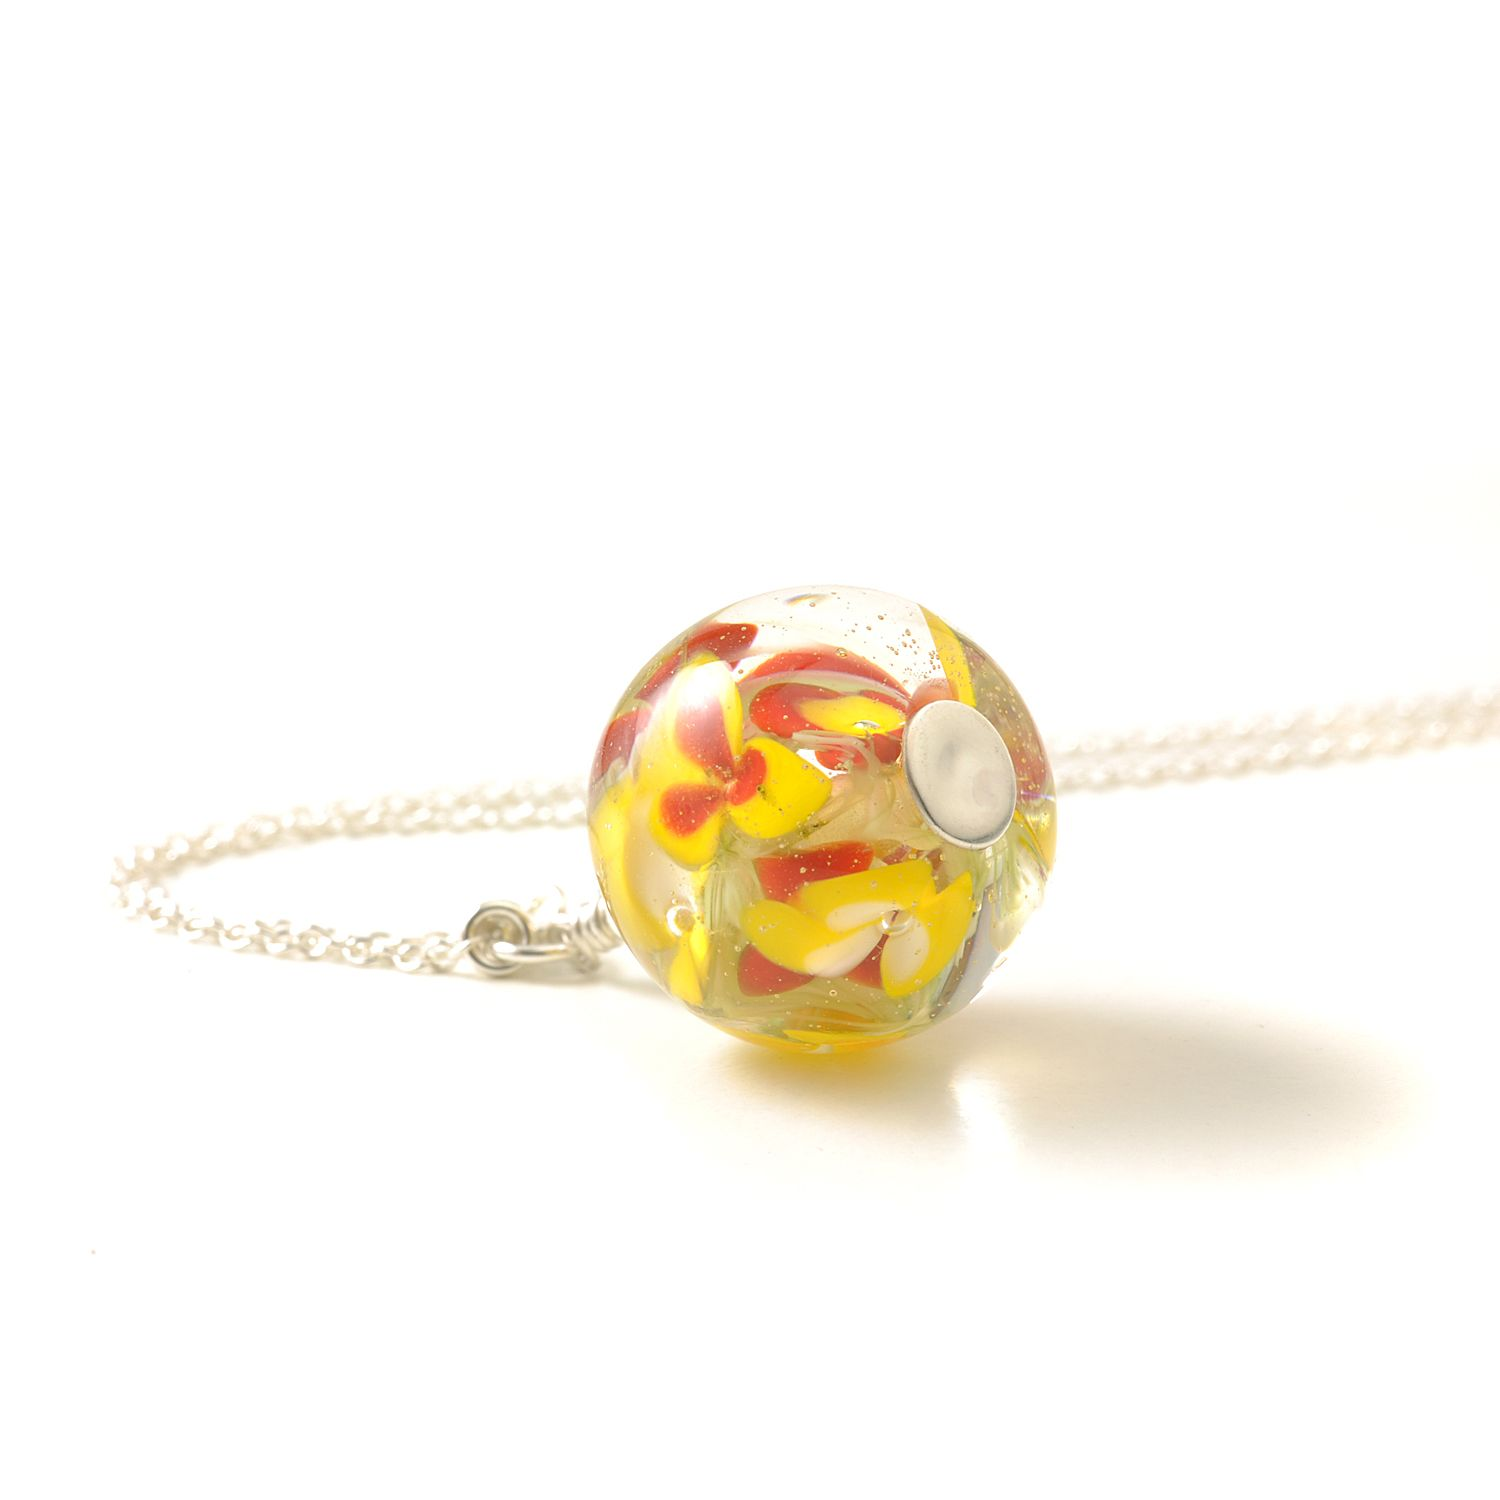 Handmade Lampwork Glass and Sterling Silver Necklaces